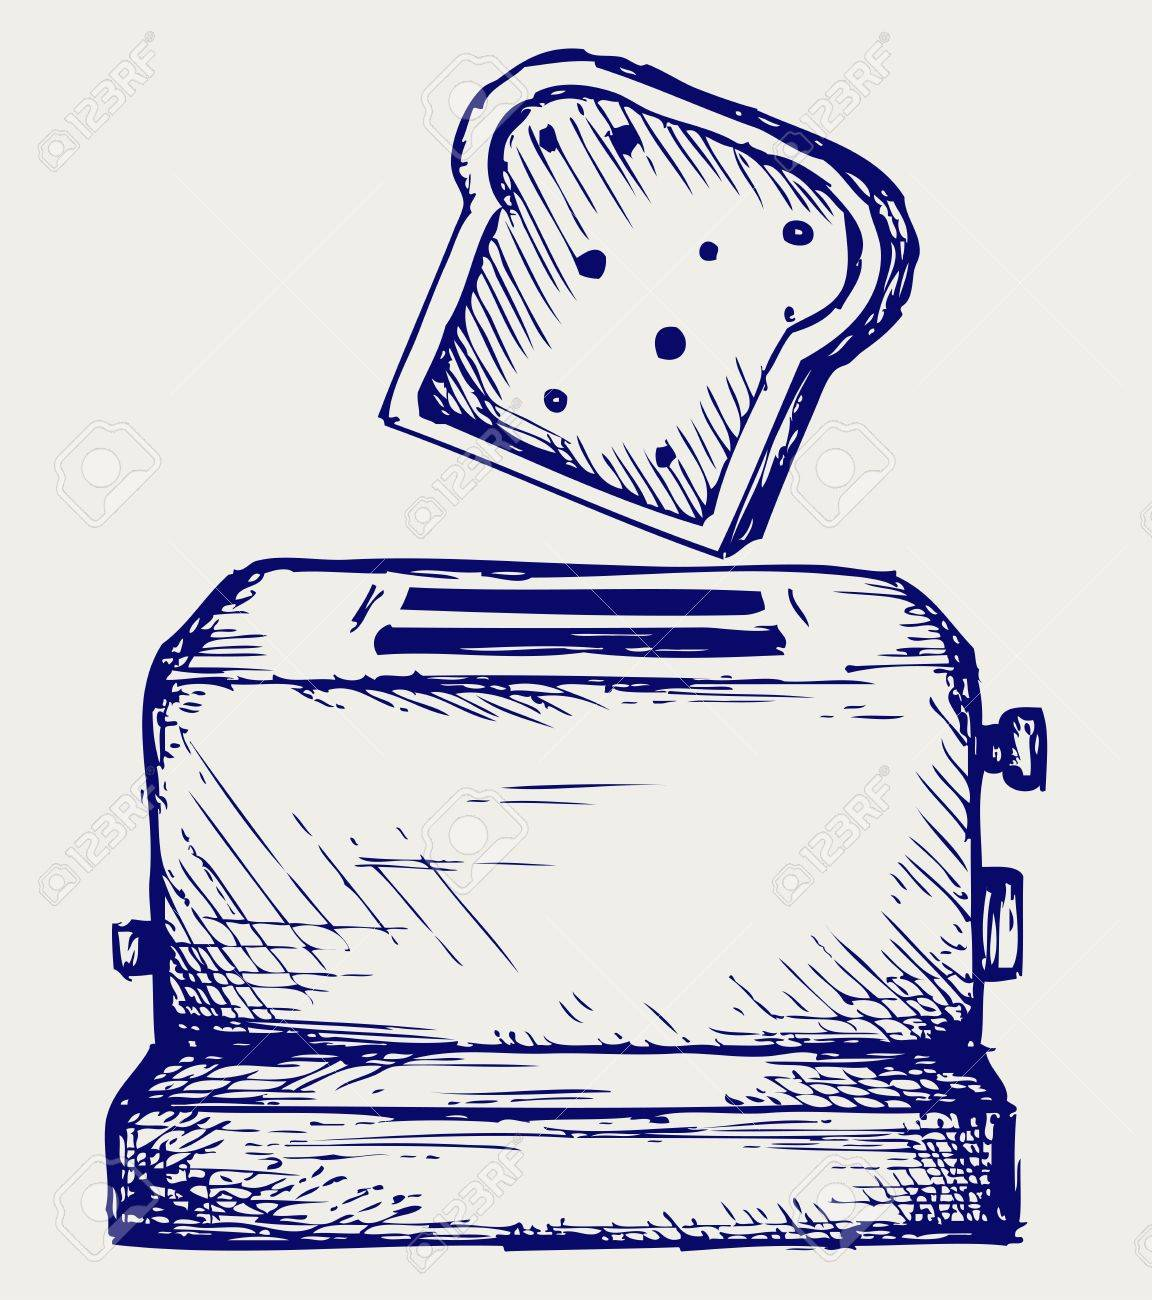 Toast popping out of a toaster  Doodle style Stock Vector - 17260574